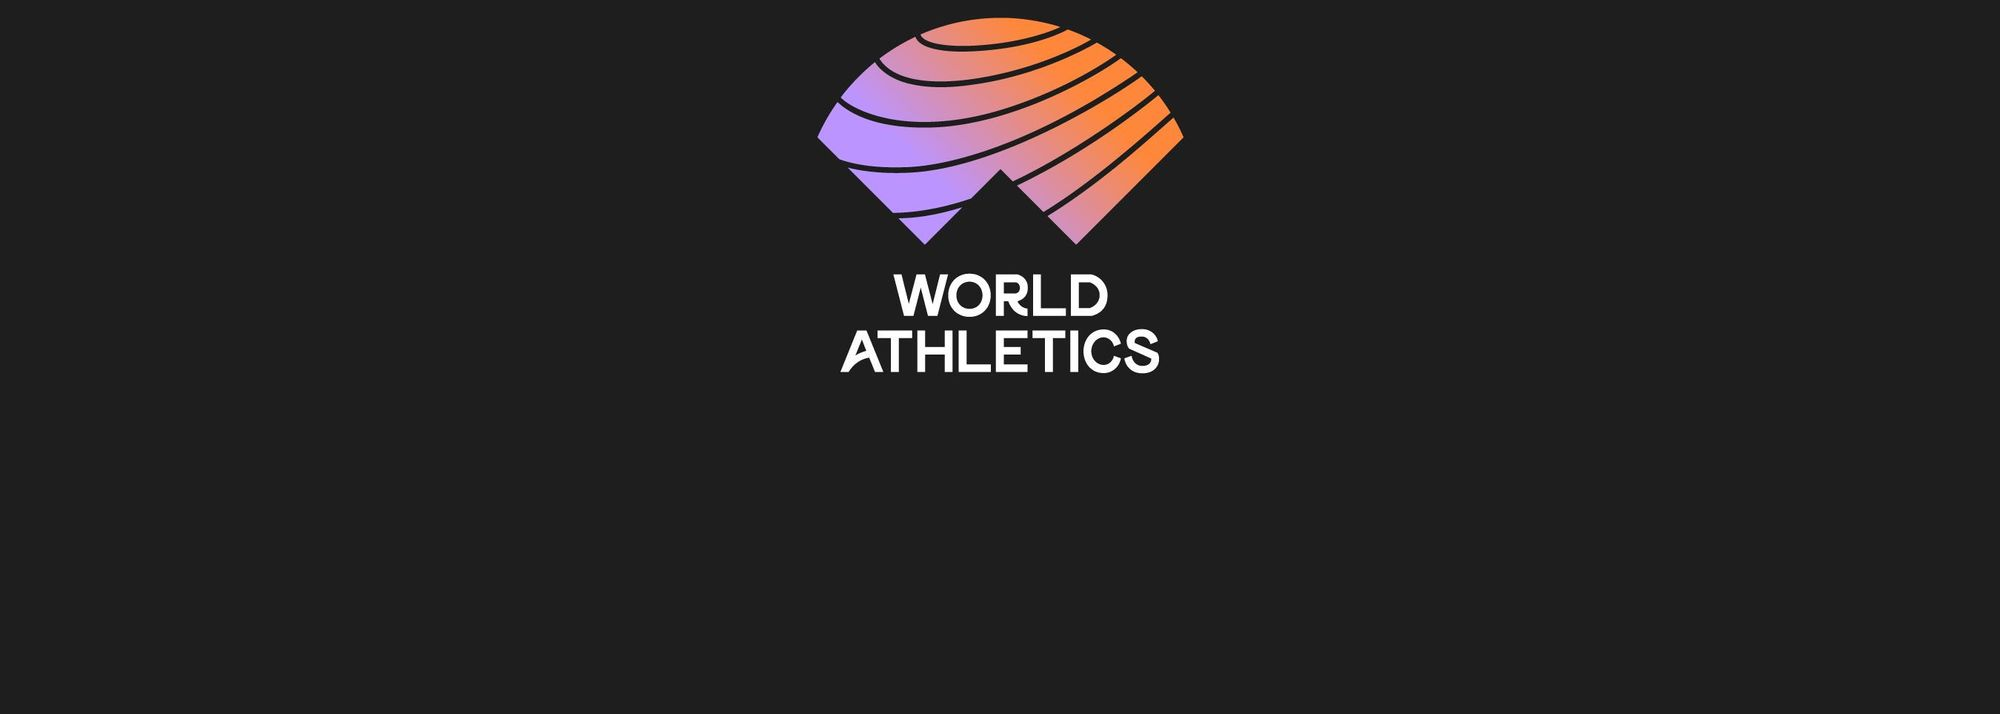 World Athletics is looking for an Event Operations Coordinator to join its competition and events department.